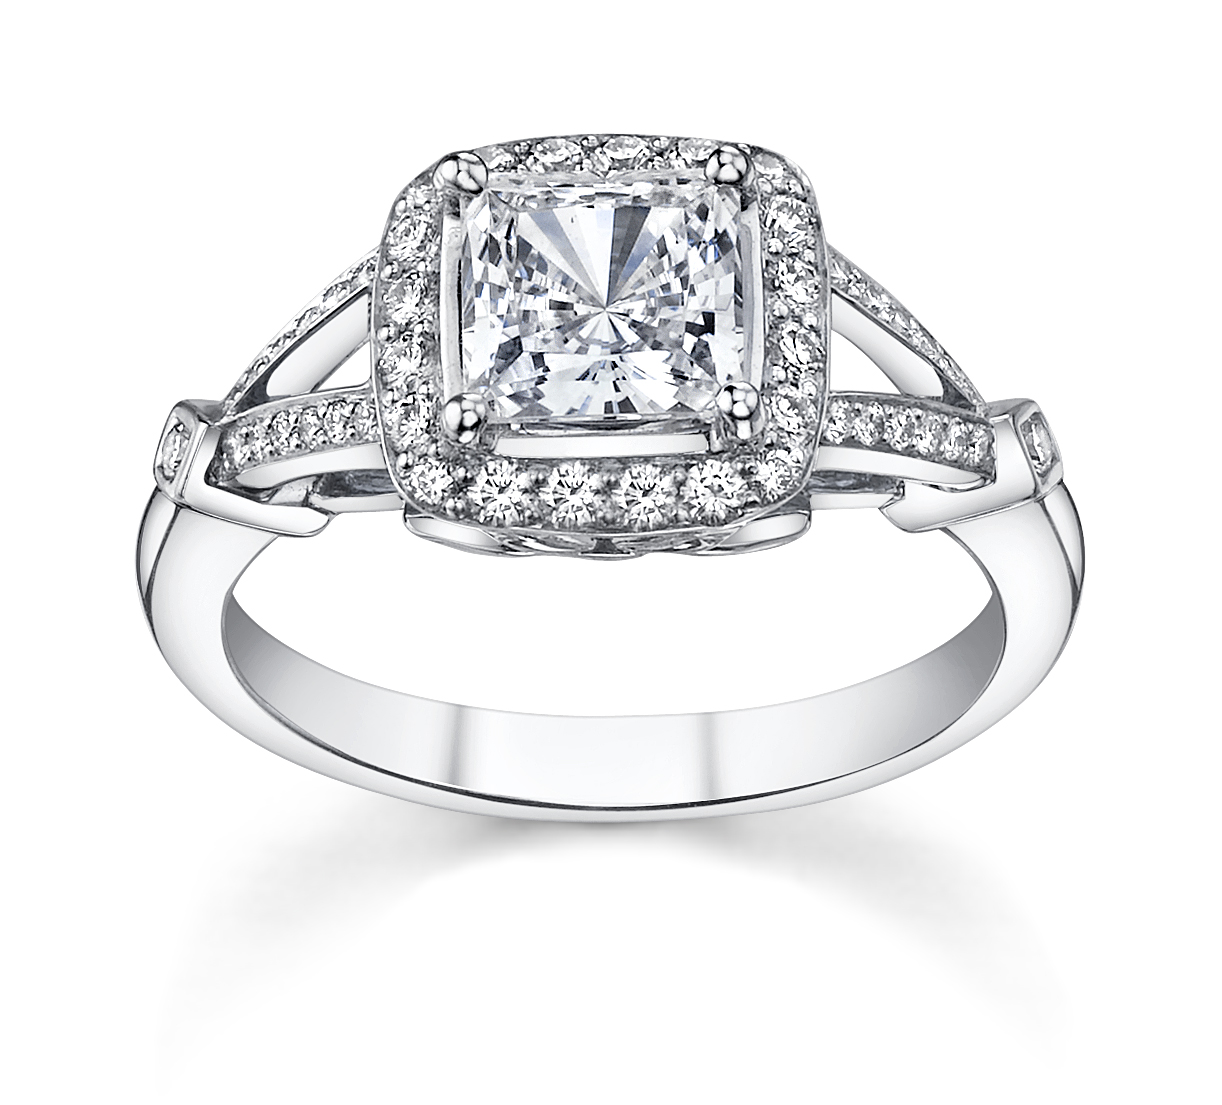 0365536 - Wedding Ring Design Ideas